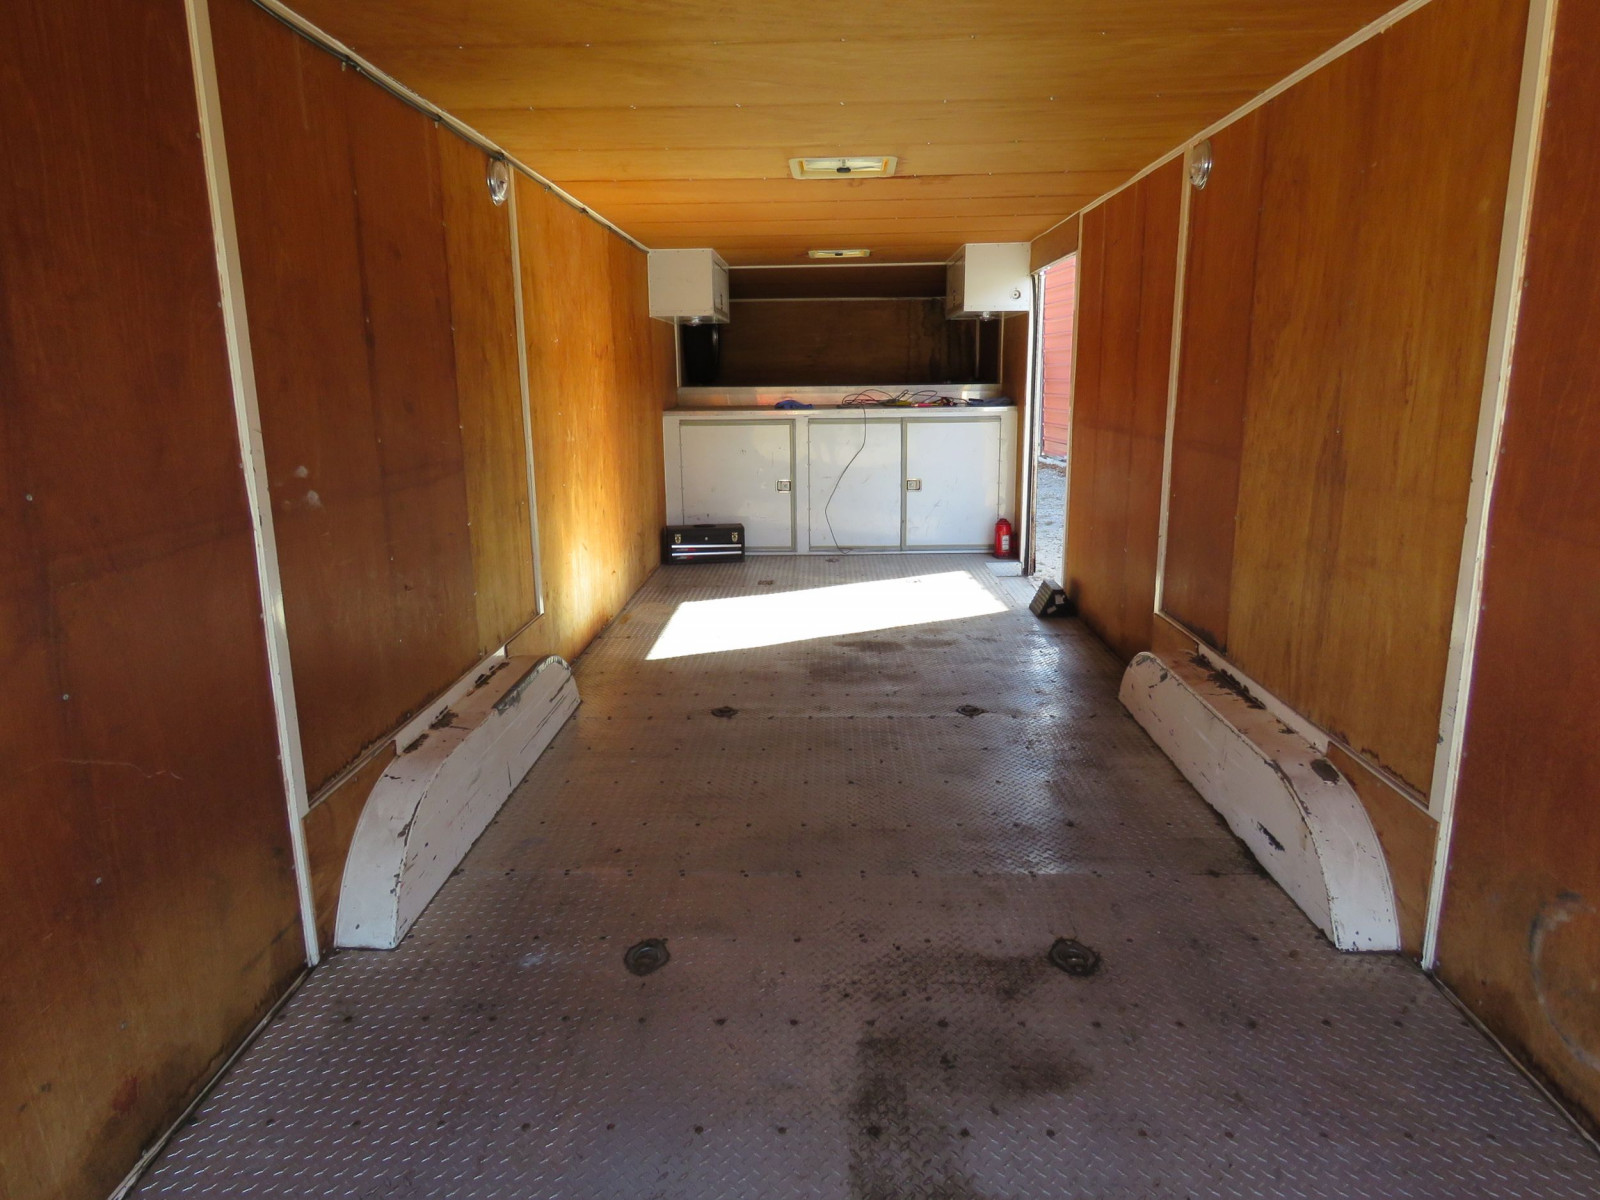 1994 S&S Welding Enclosed Trailer - Image 5